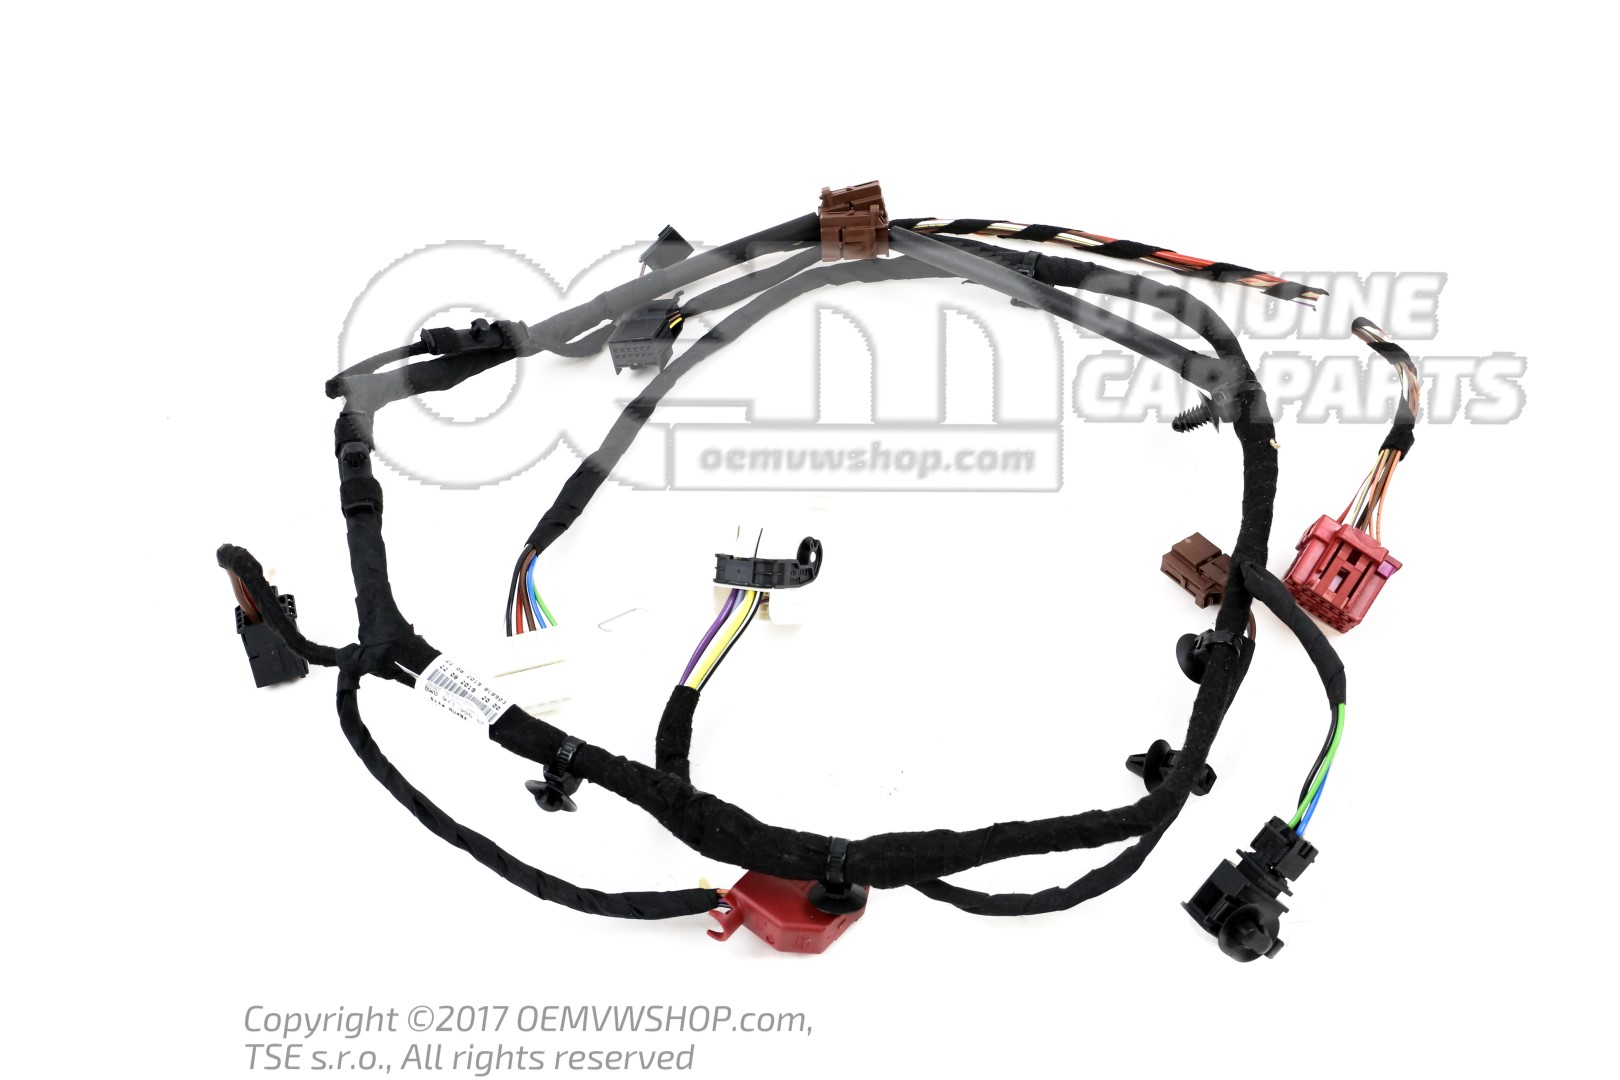 Seat frame wiring harness